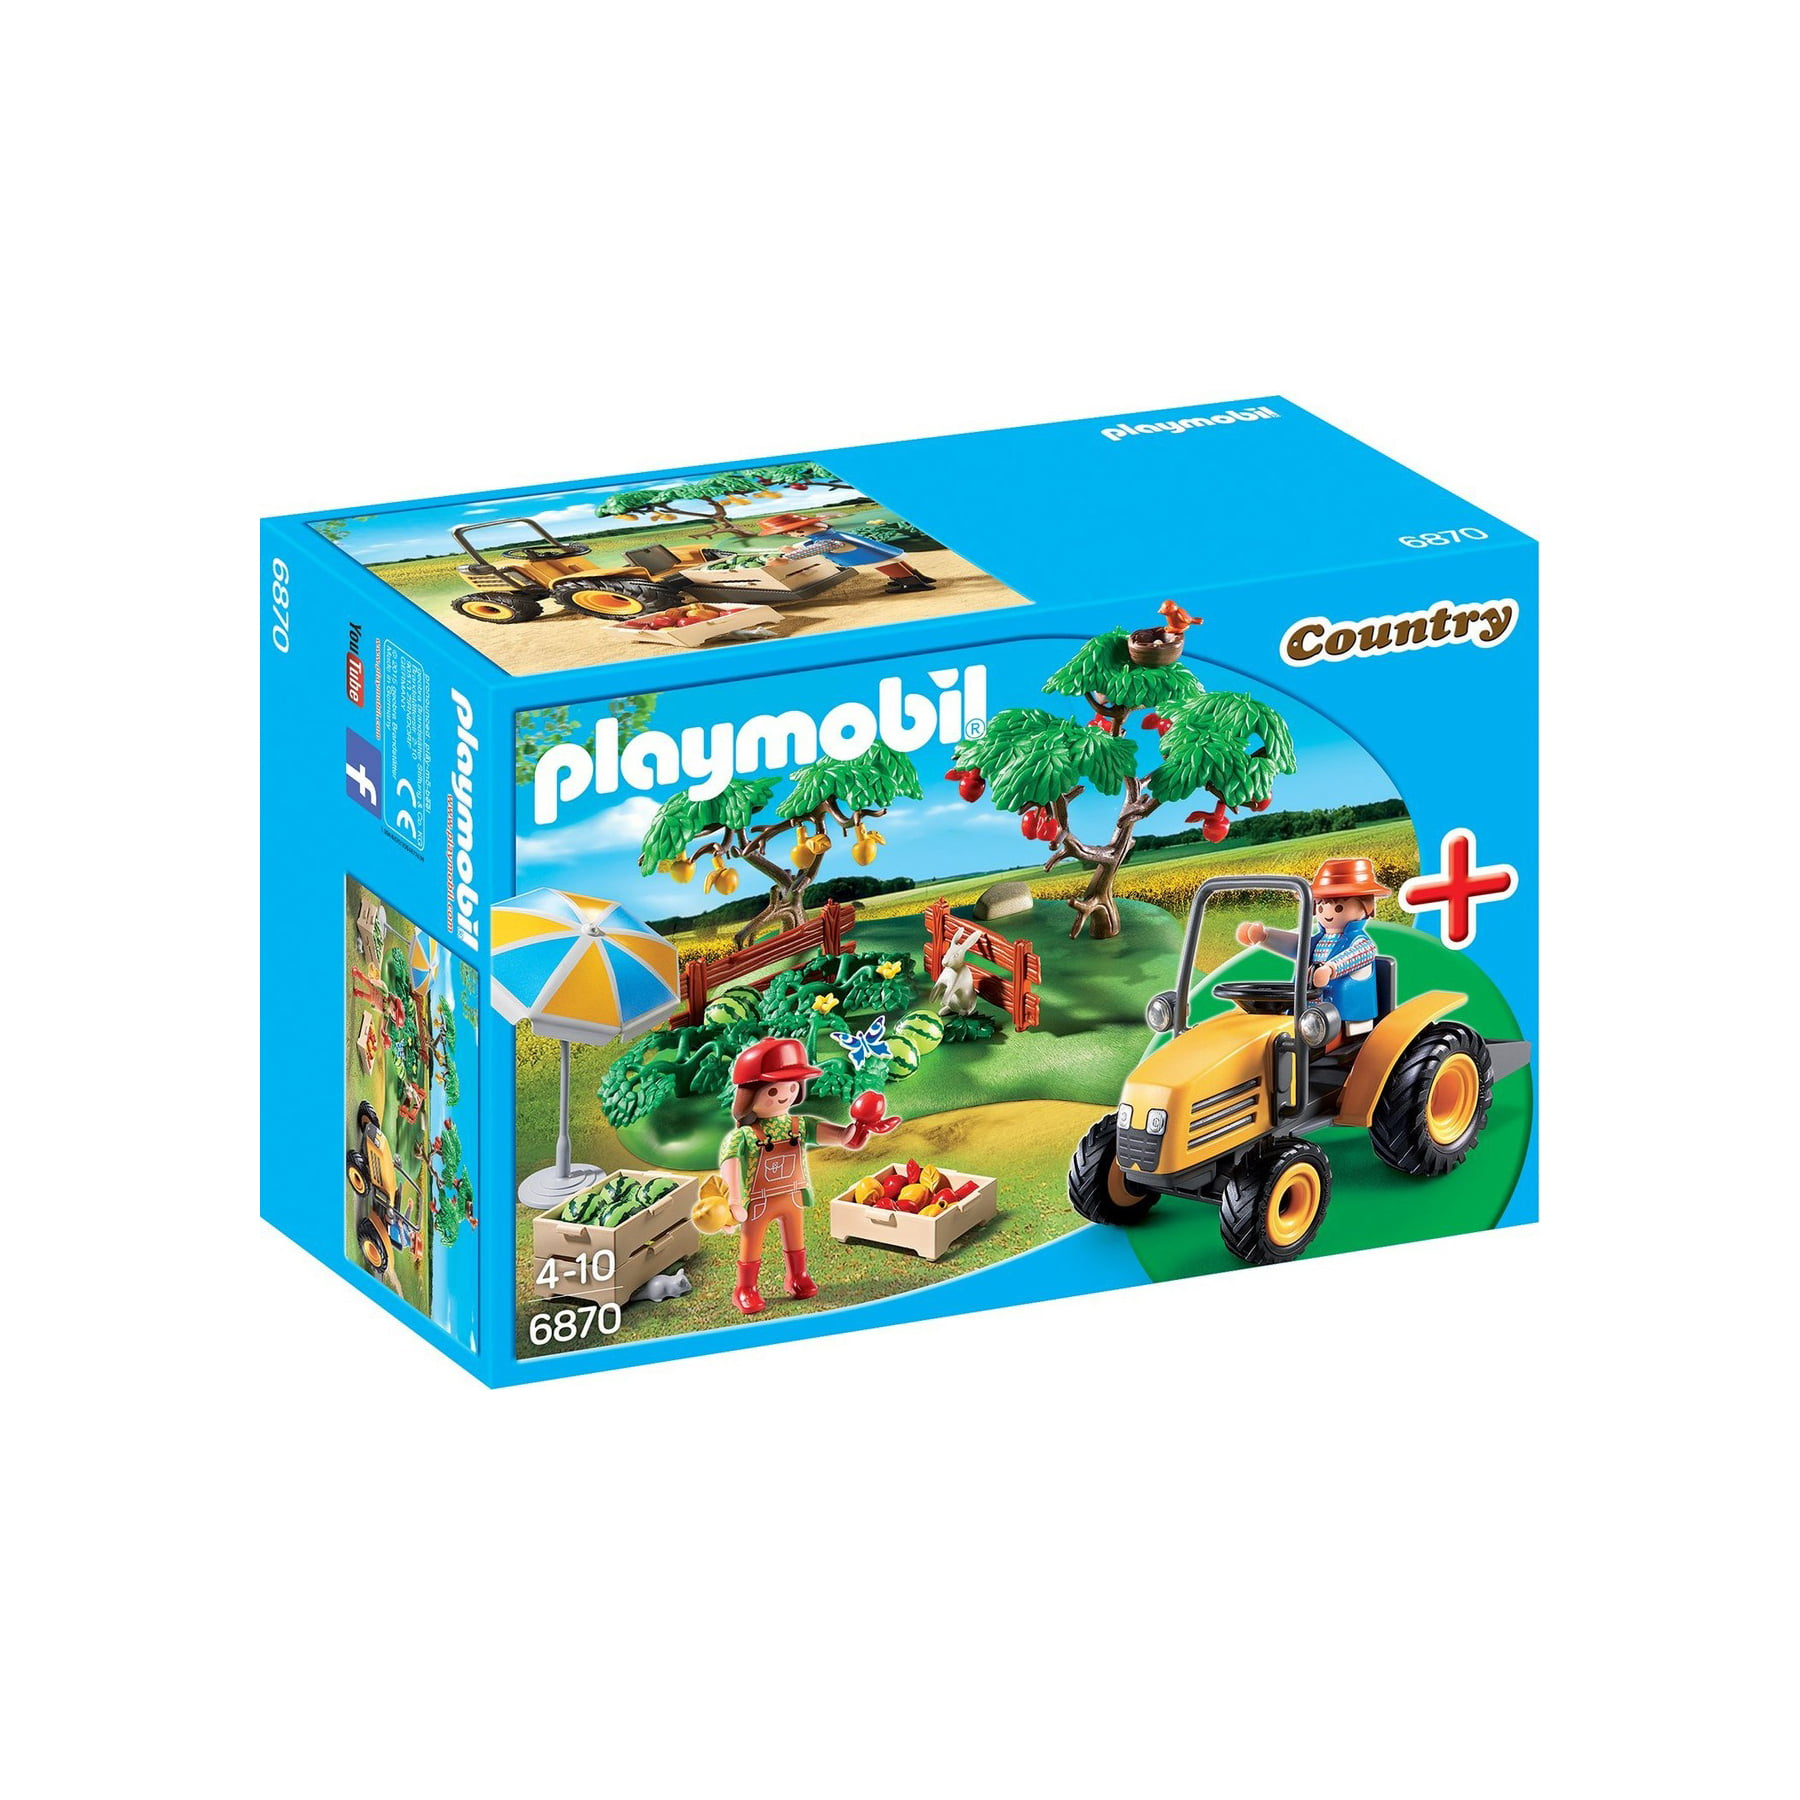 PLAYMOBIL - COUNTRY - POMAR COM TRATOR - 6870